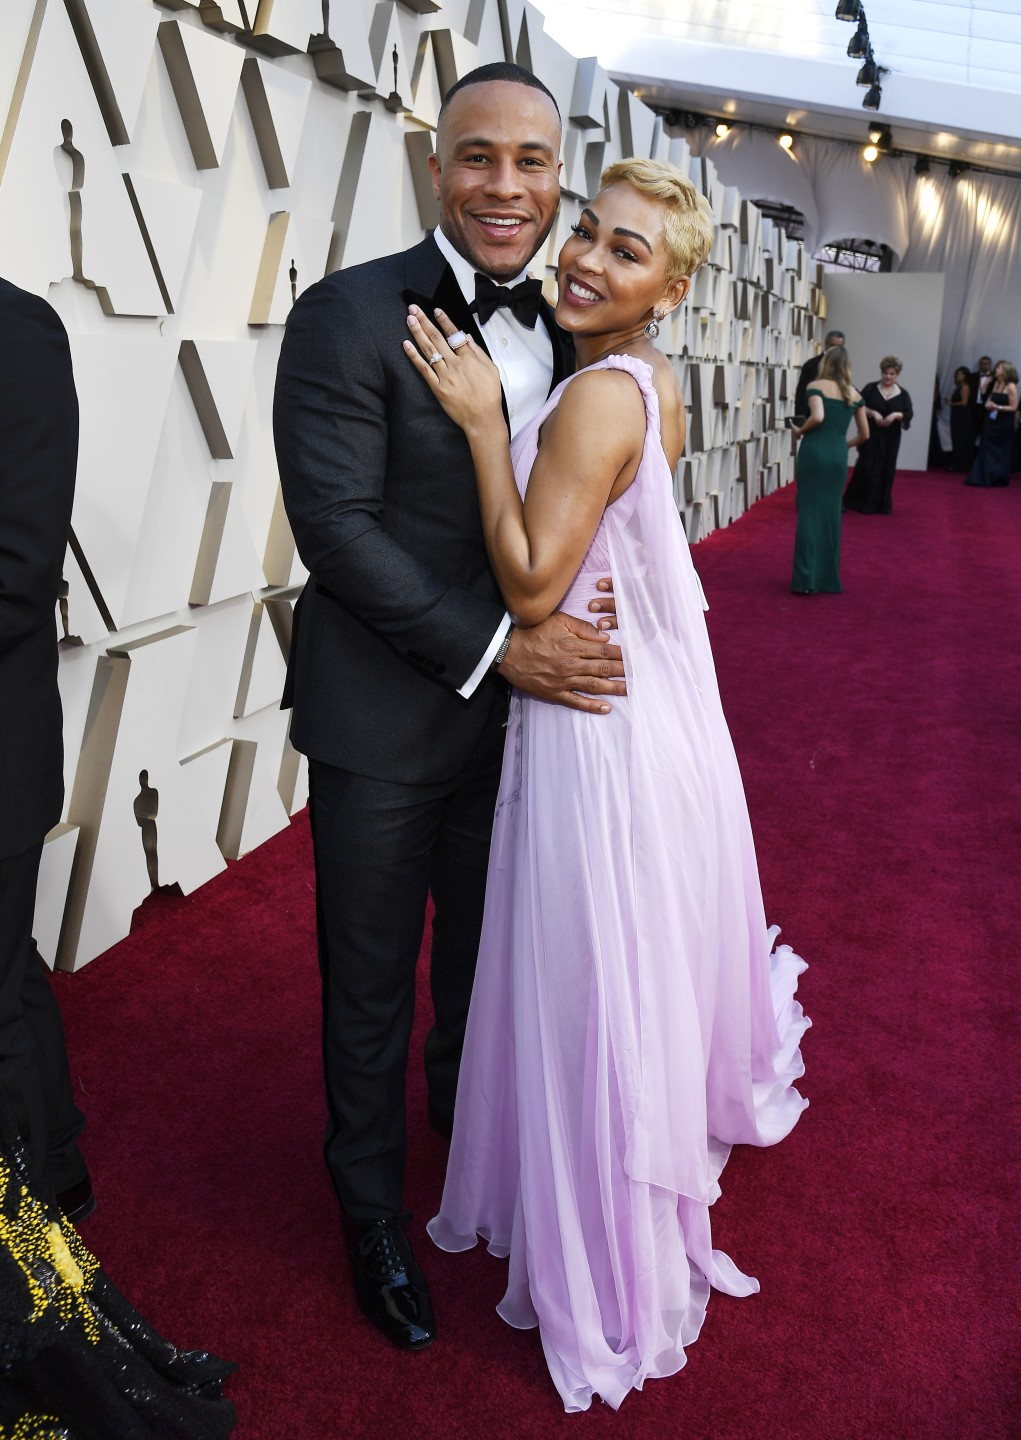 91st OSCARS RED CARPET 2019 MEAGAN GOOD AND DEVON FRANKLIN.jpg